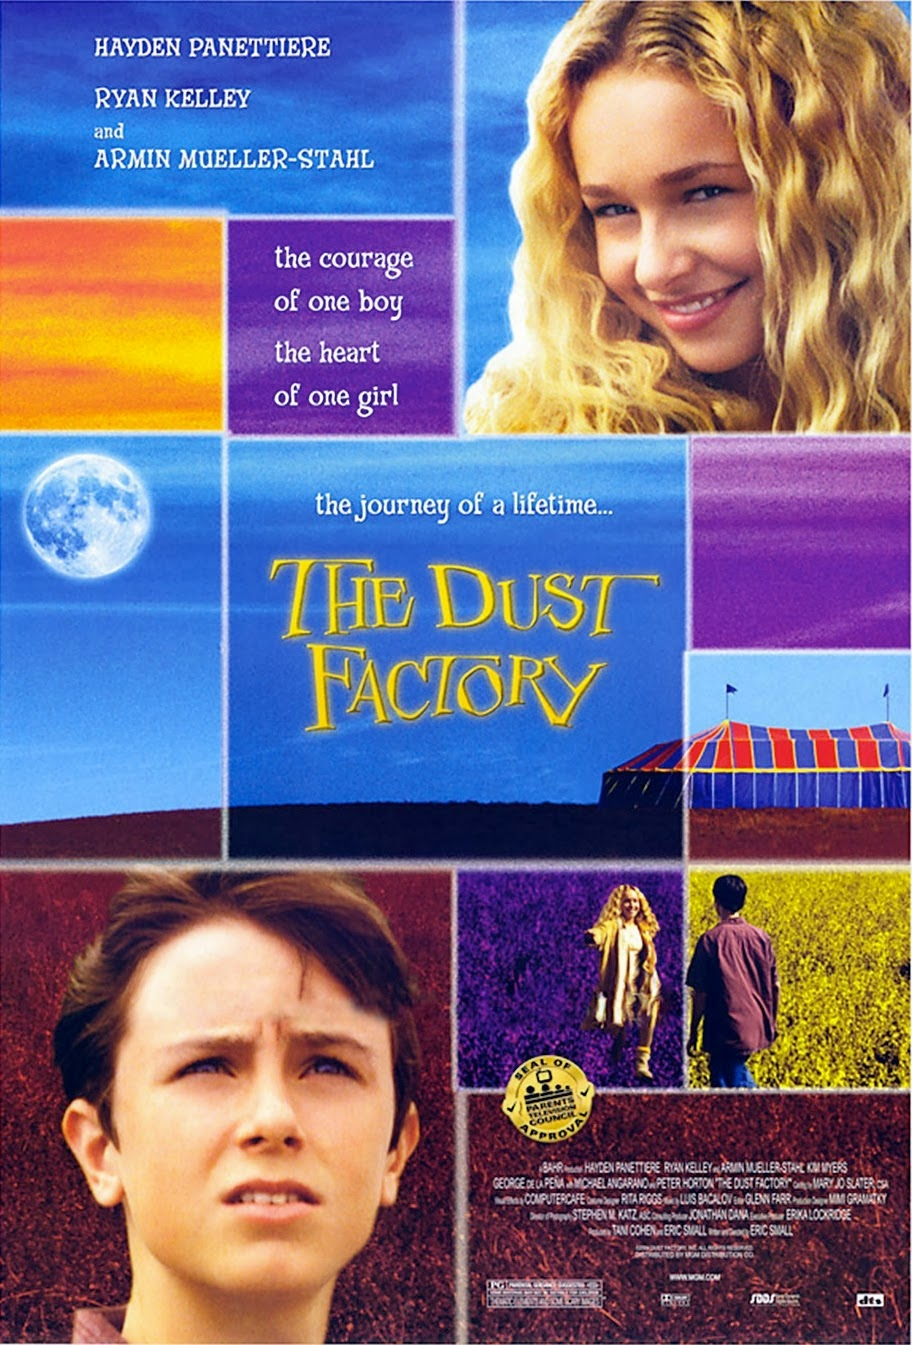 The Dust Factory — 2.5 out of 5 stars